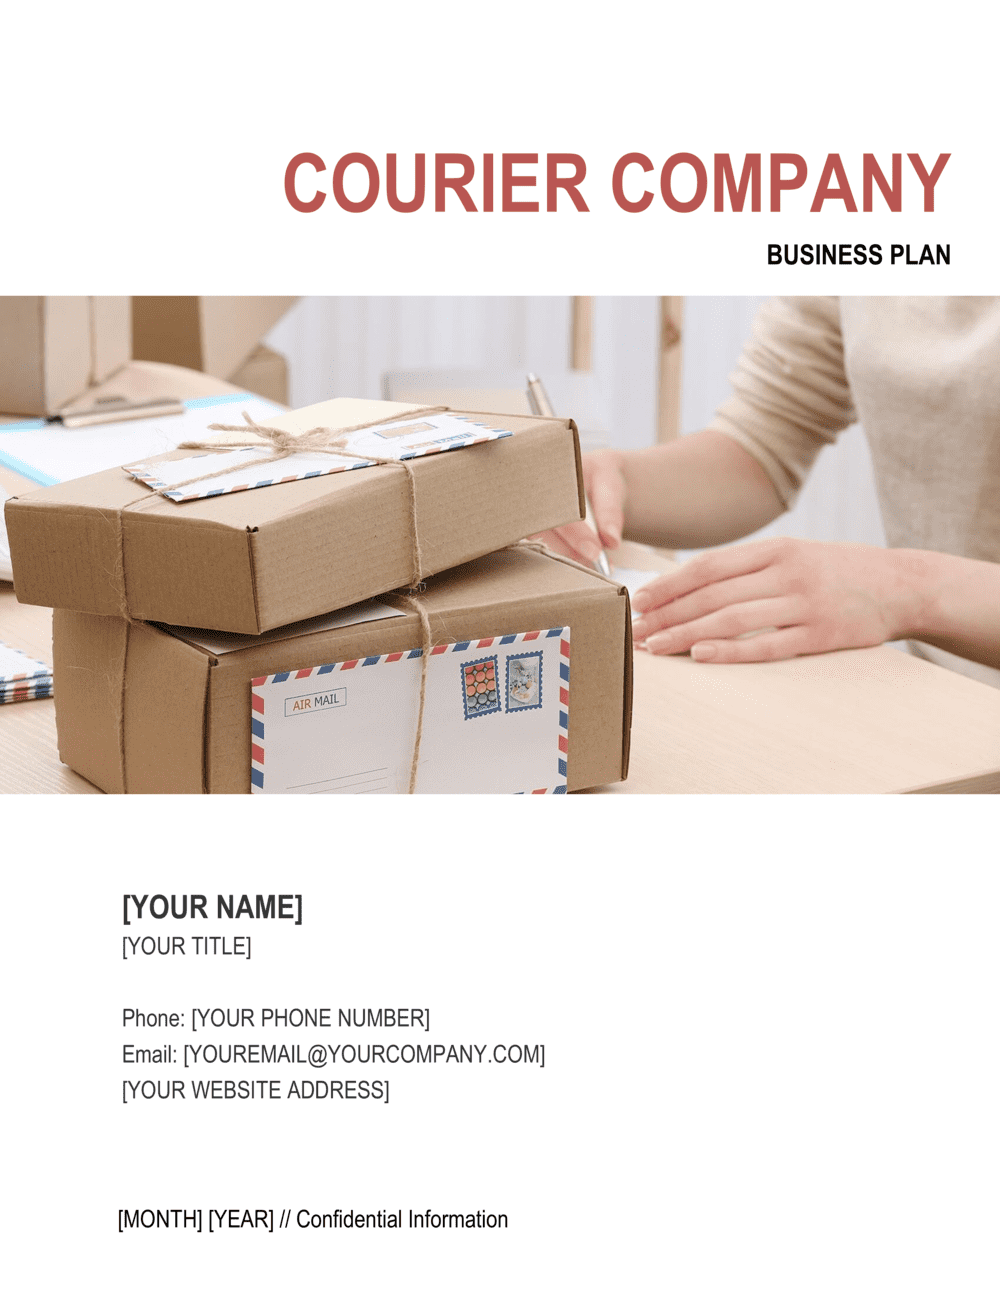 Business-in-a-Box's Courier Company Business Plan Template